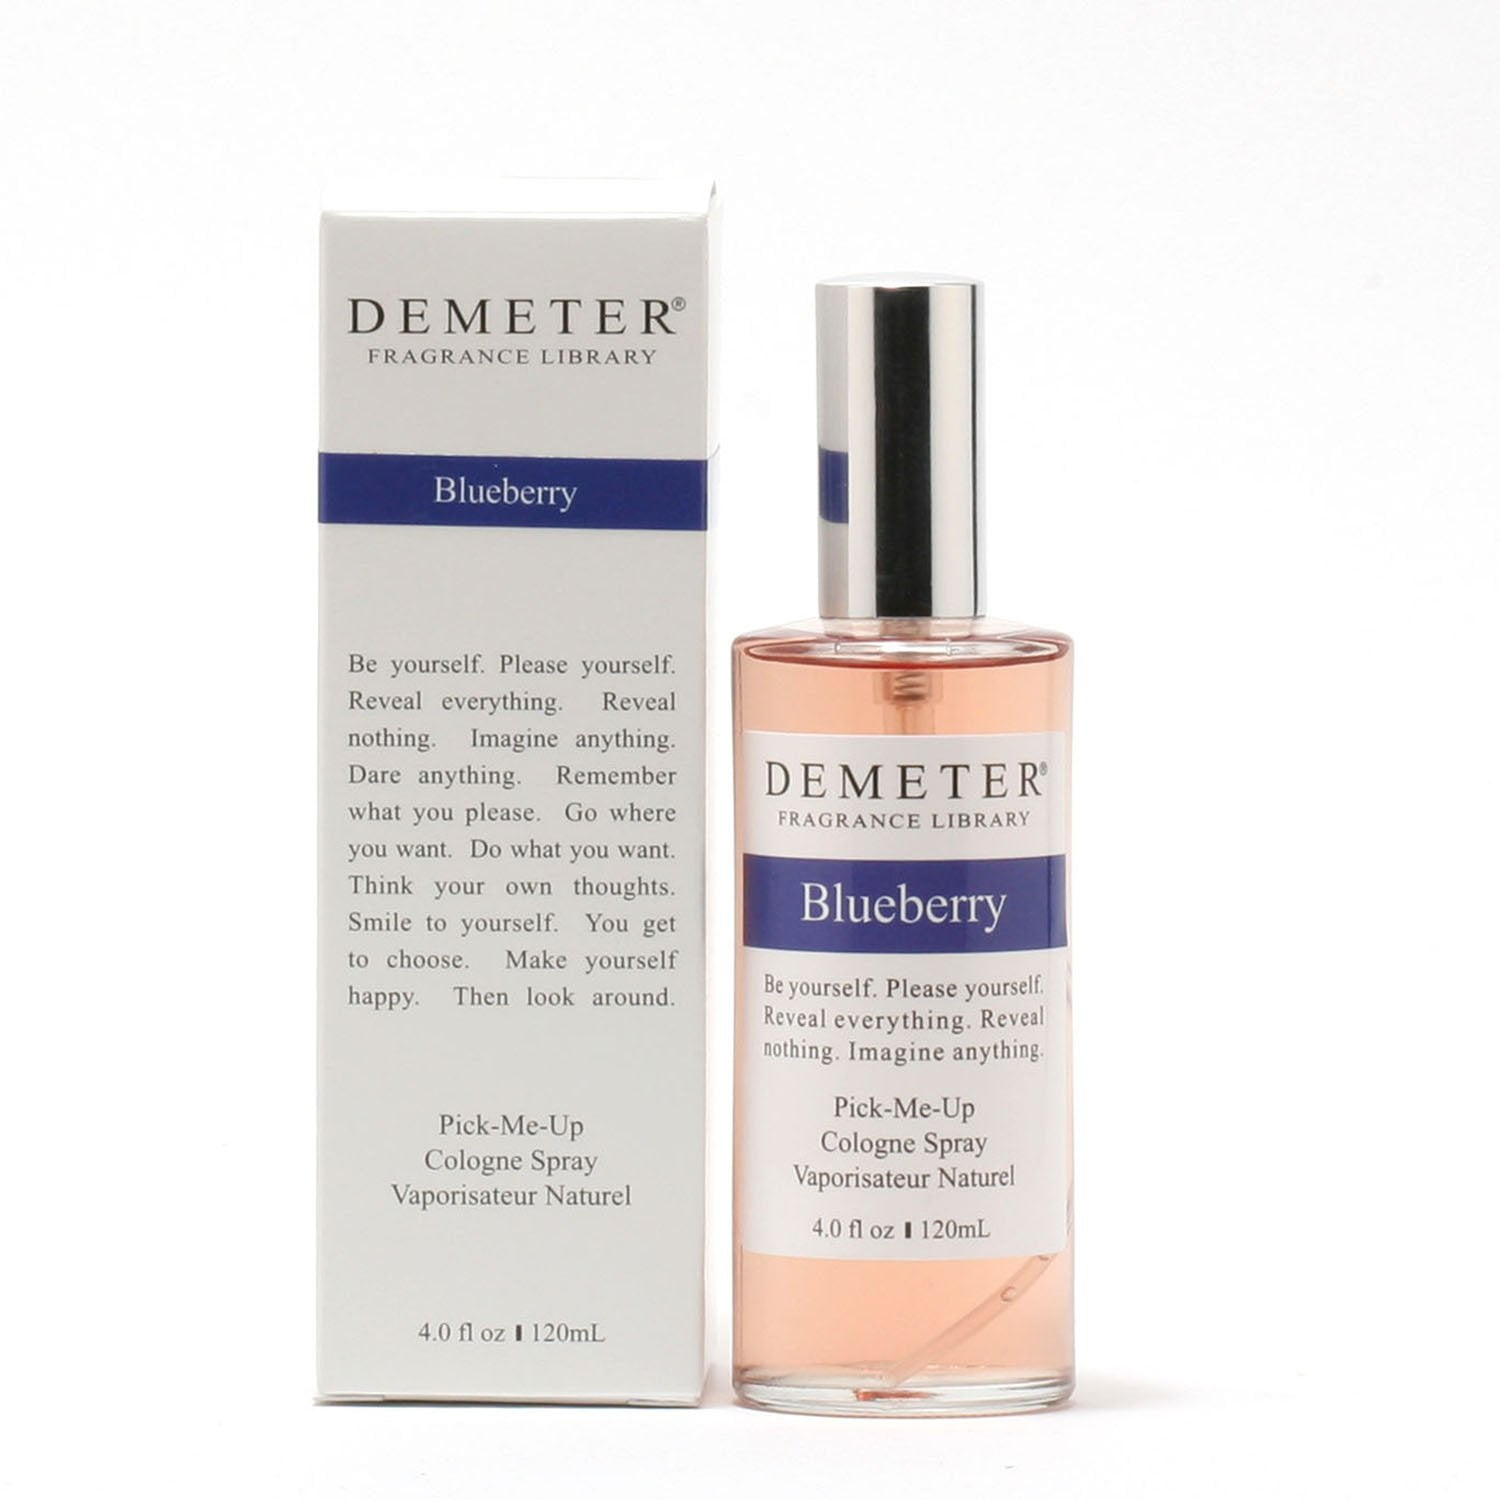 Perfume - DEMETER BLUEBERRY FOR WOMEN - COLOGNE SPRAY, 4.0 OZ